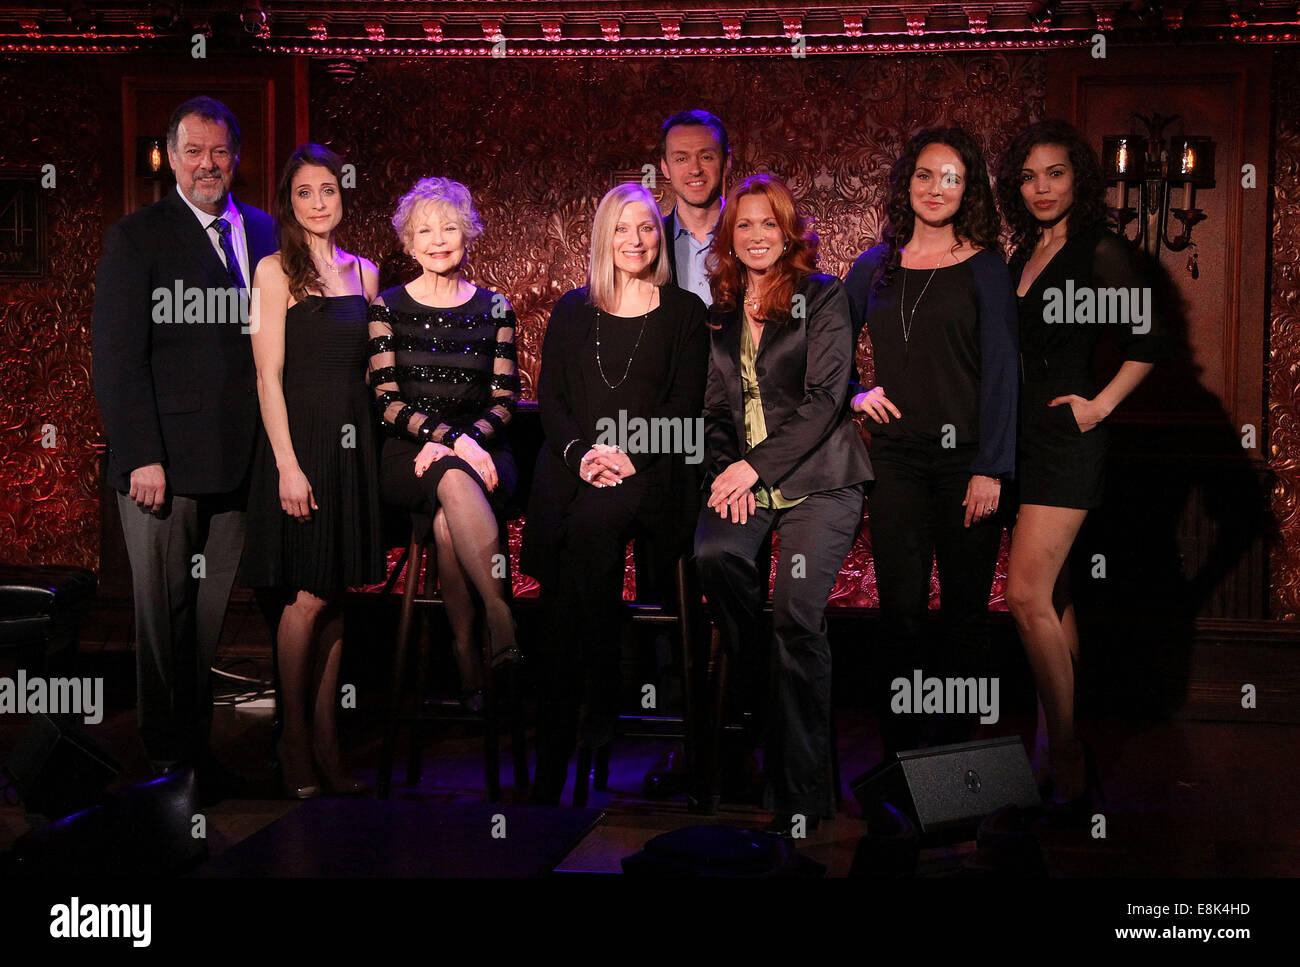 Press Preview of Concerts at 54 Below nightclub.  Featuring: Eric Michael Gillett,Elena Shaddow,Penny Fuller,Roslyn - Stock Image